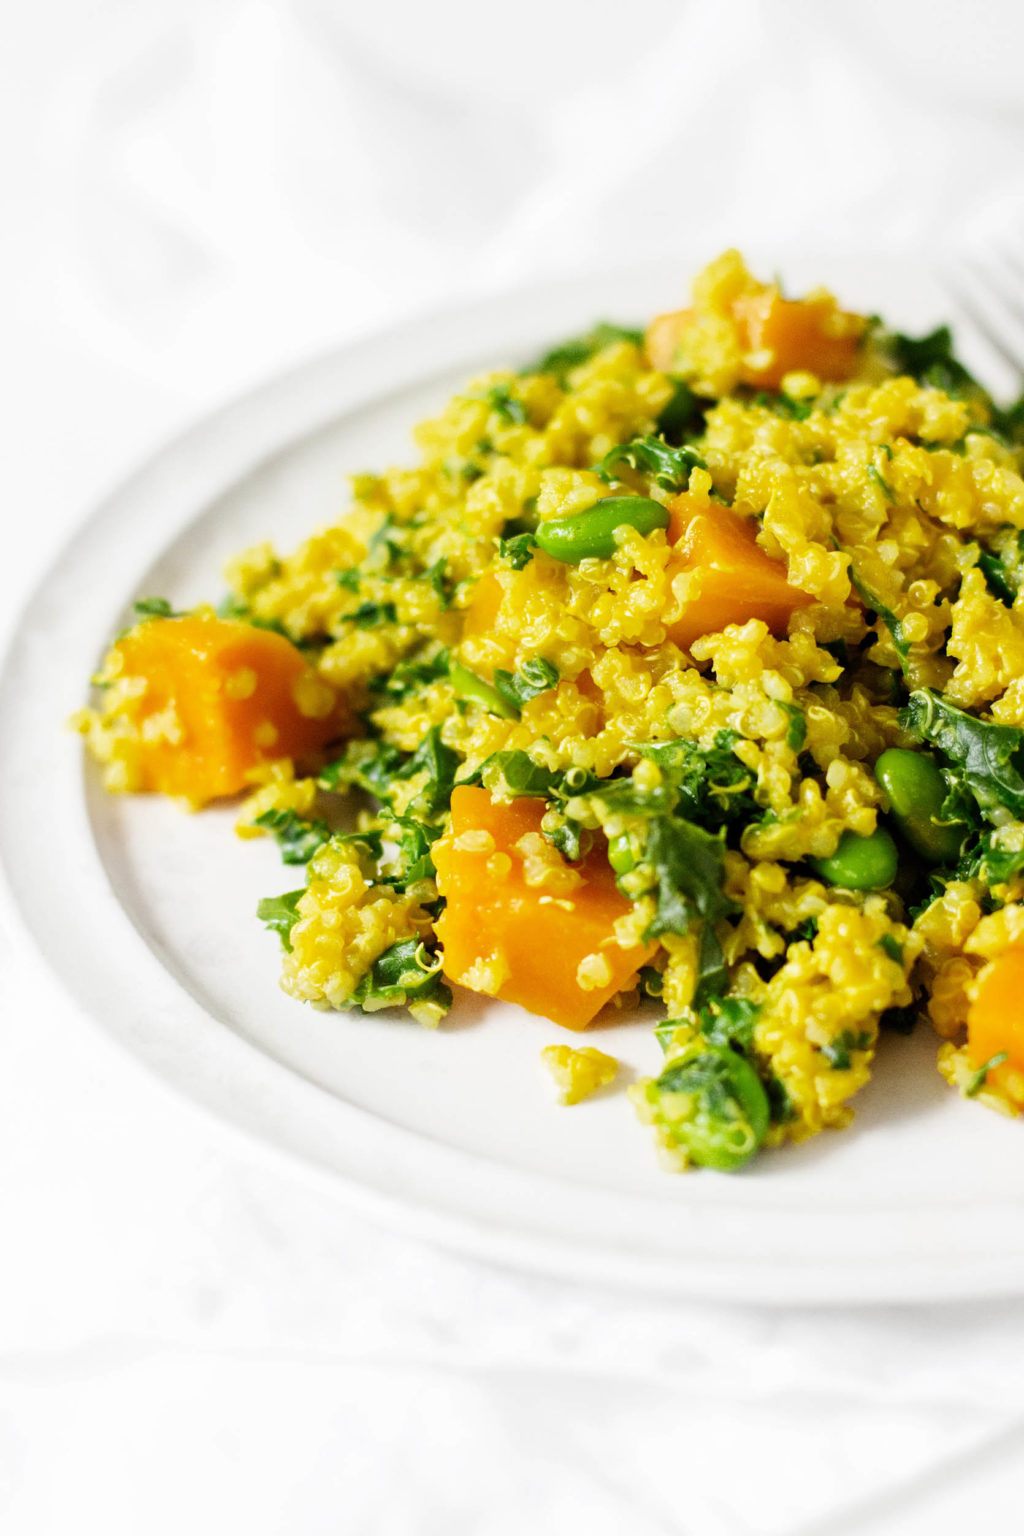 A golden colored plate of quinoa, butternut squash, edamame, and kale, brought together with a creamy sauce.